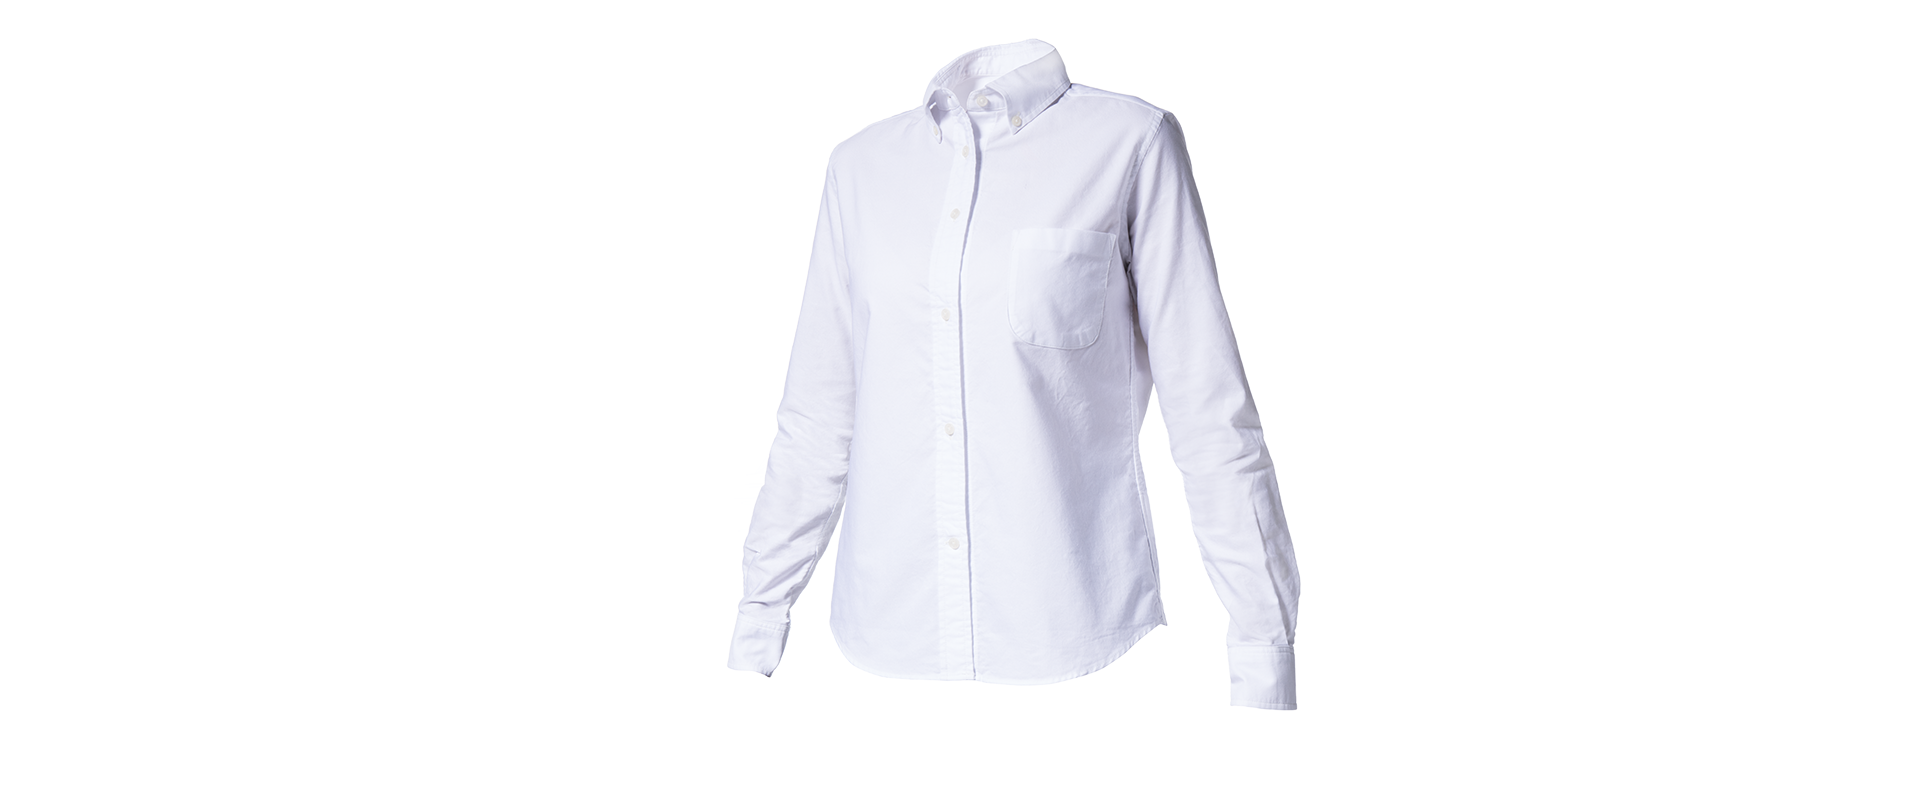 a0176e3e05f3c The ZOZO Oxford shirt is the ultimate basic shirt